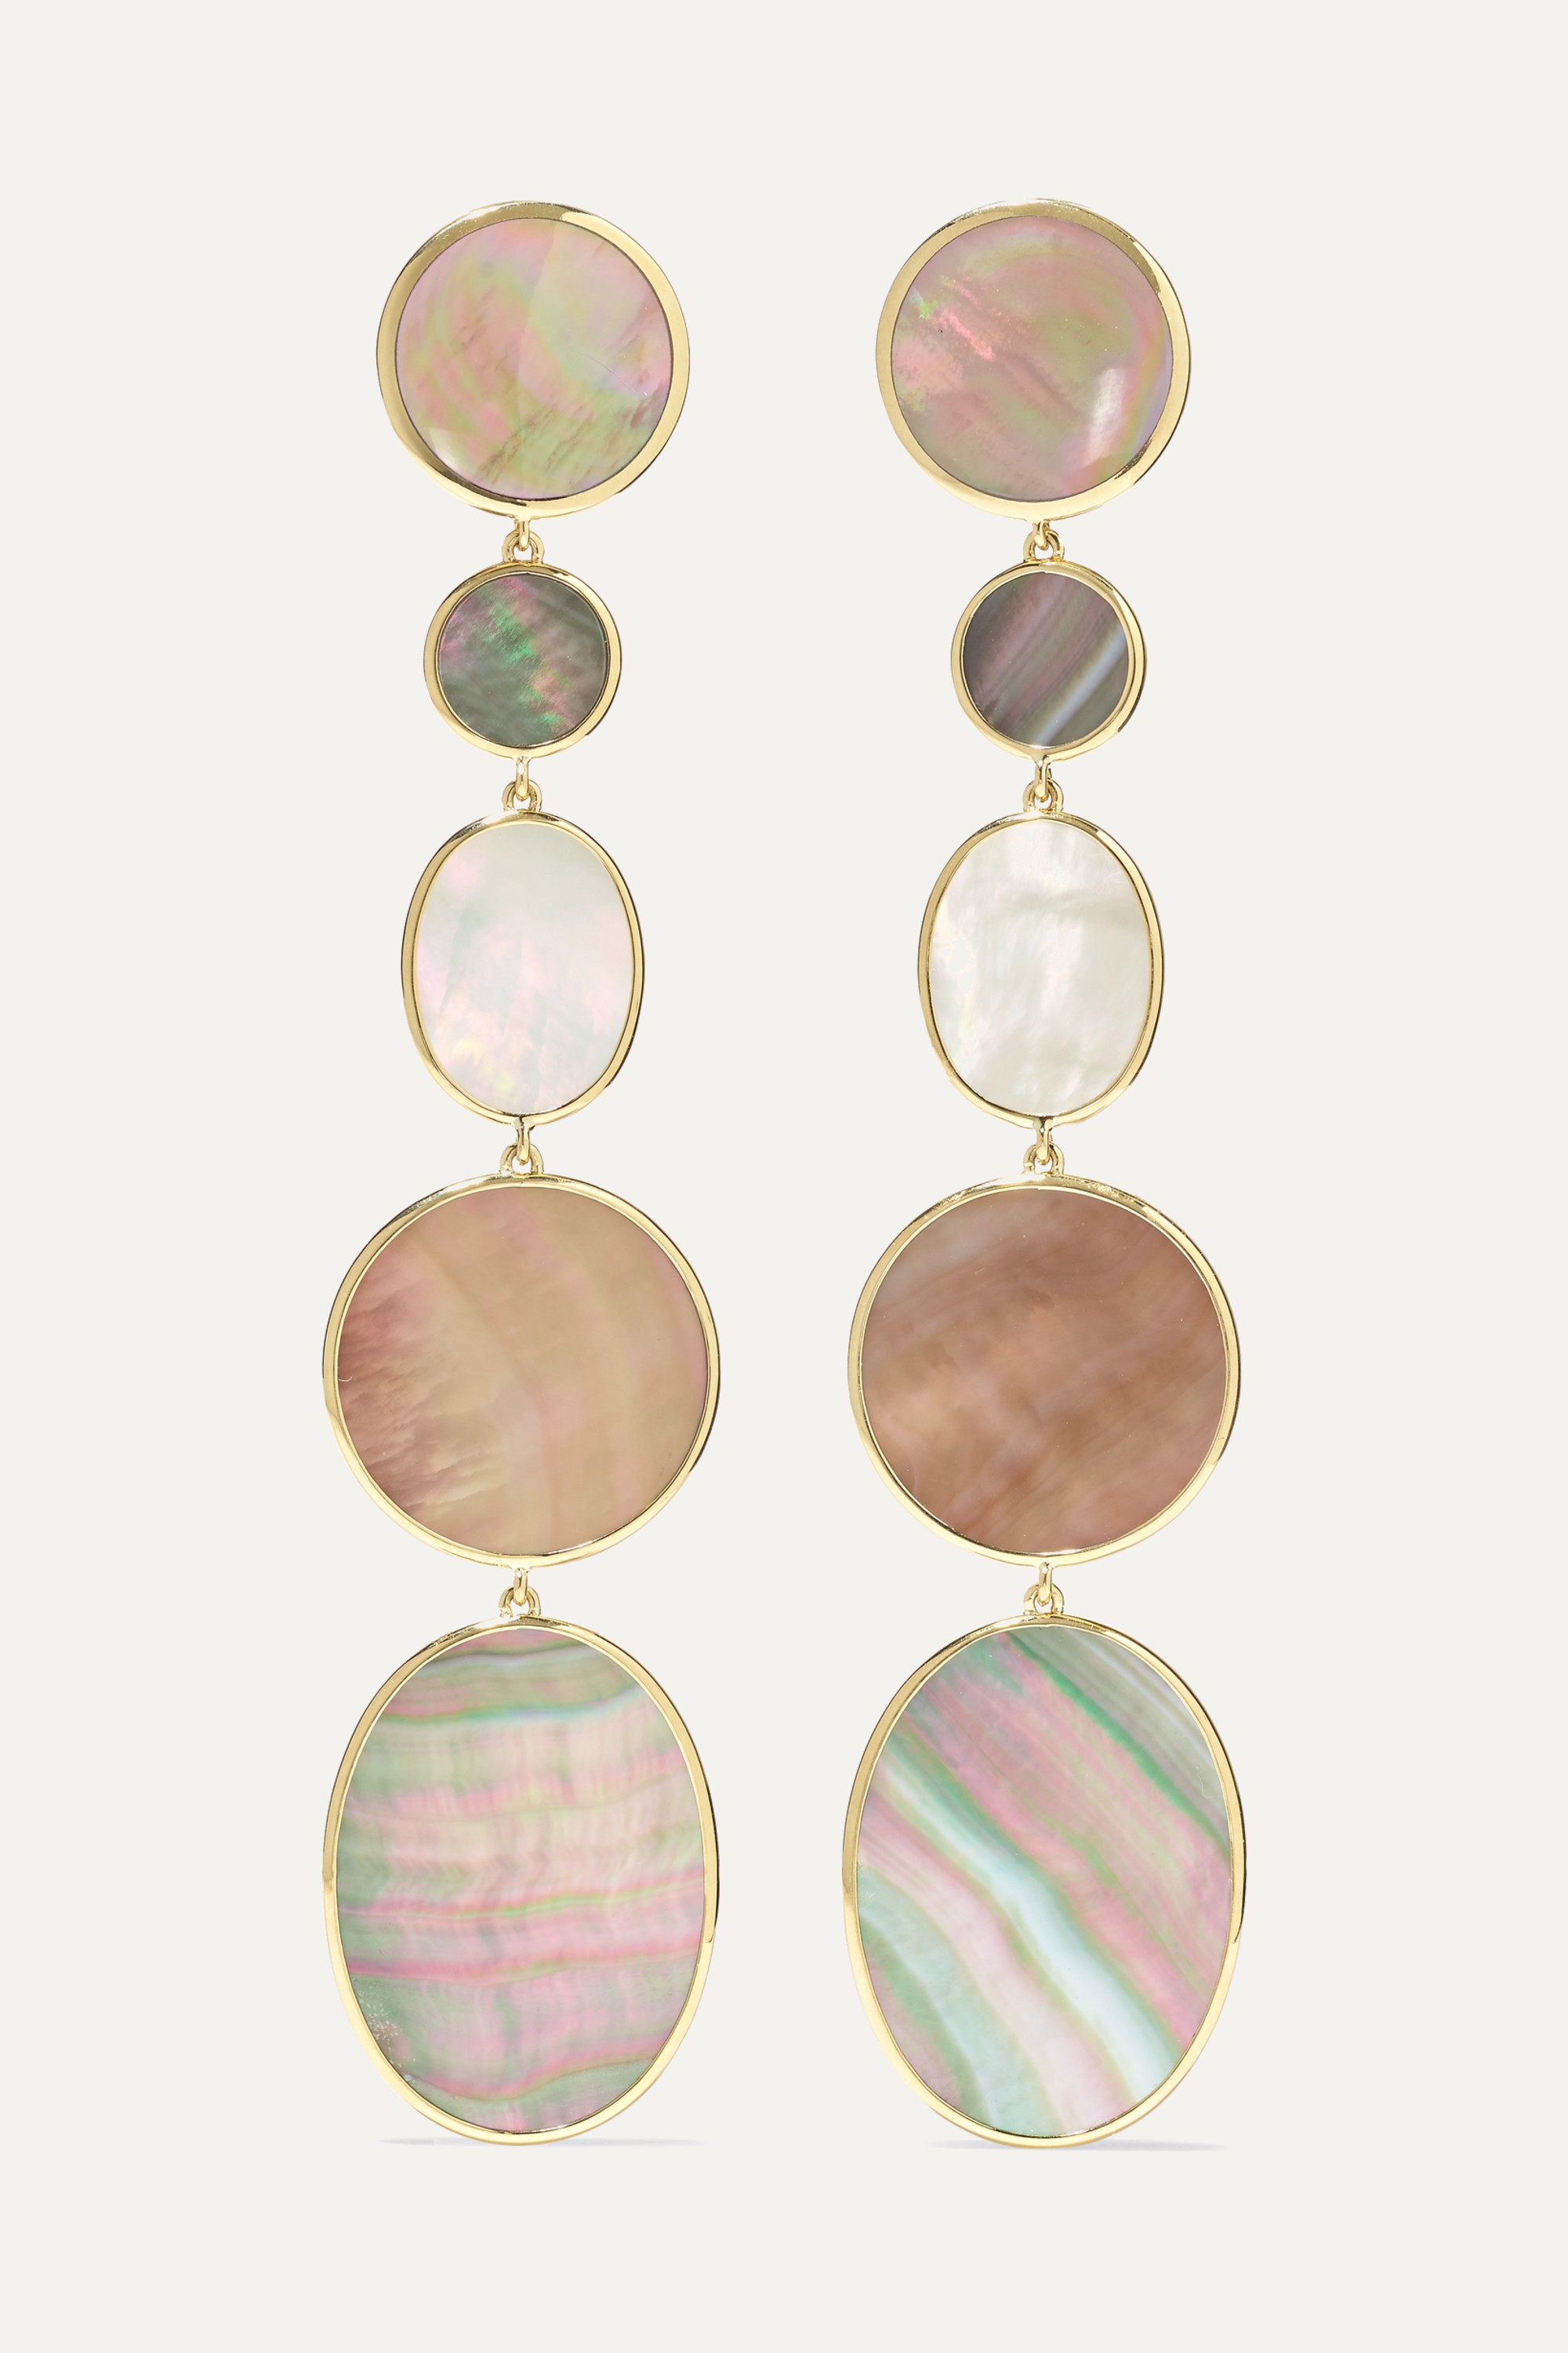 Ippolita - Polished Rock Candy 18-karat gold, shell and mother-of-pearl earrings